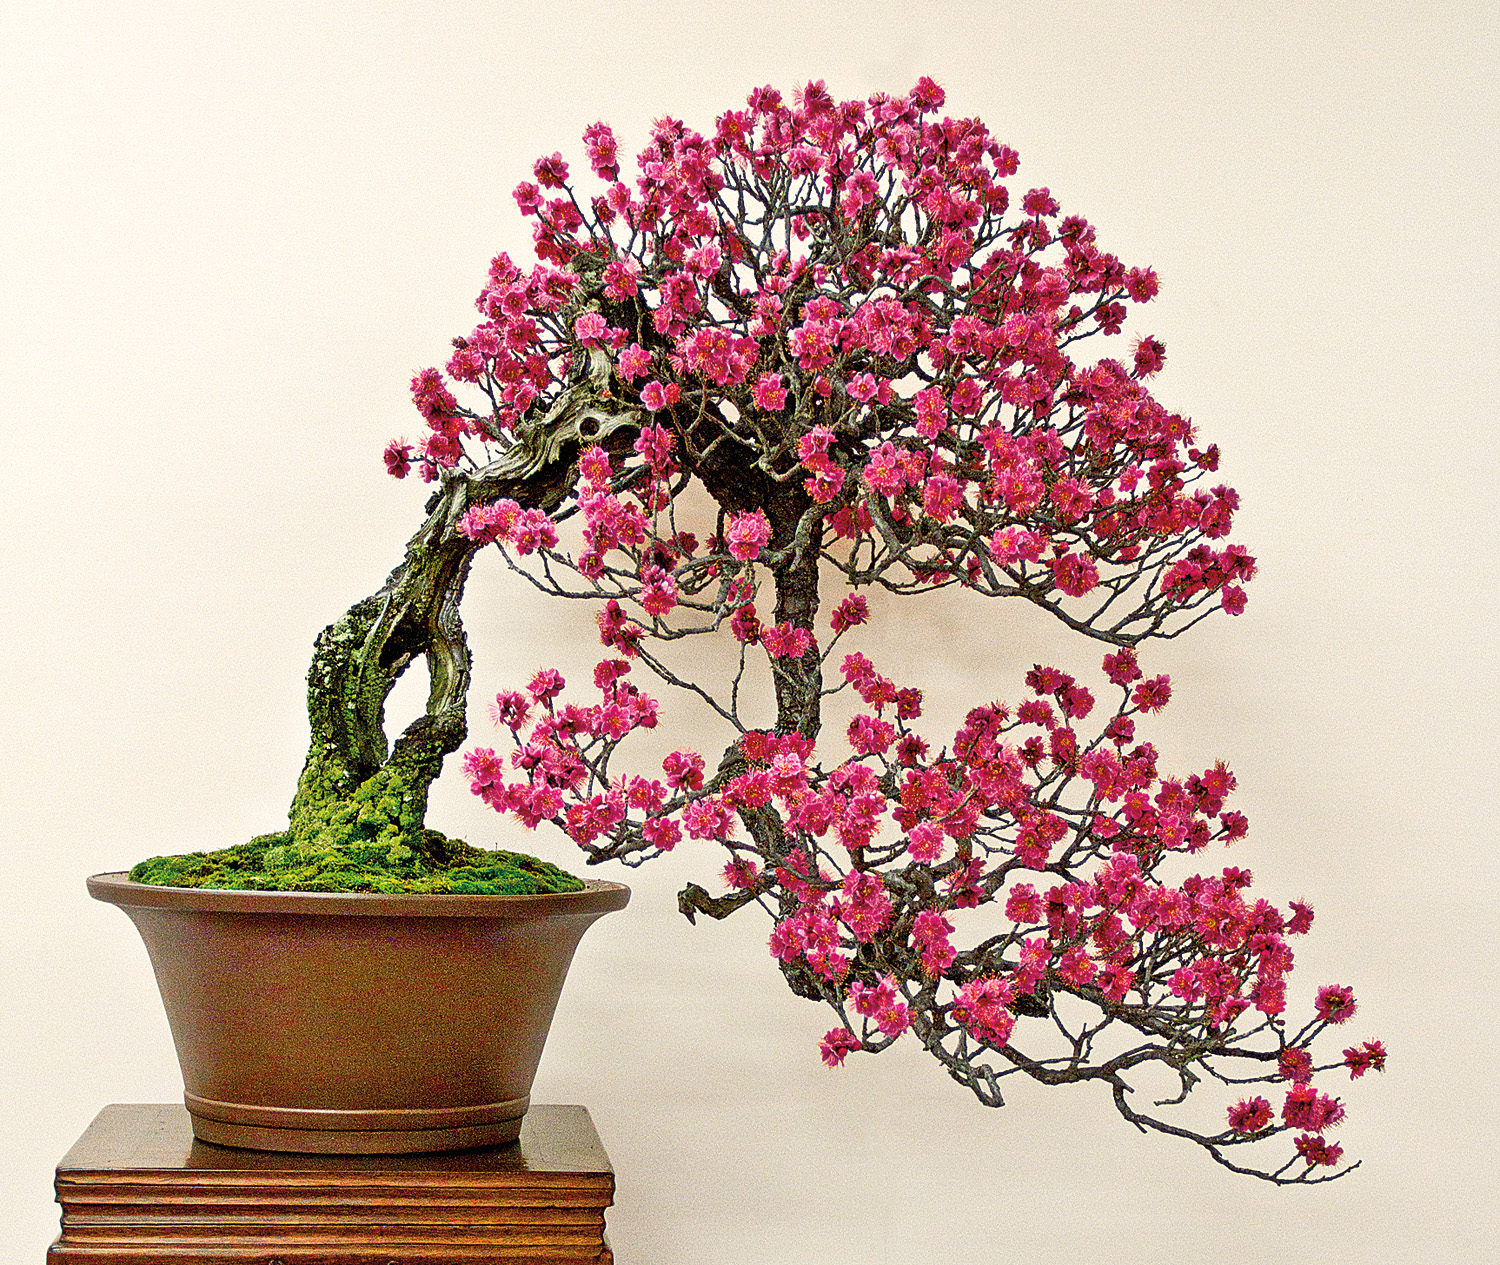 japanese quince symbolism Symbolism of flowers and fruit in chinese art with entries for peonies, persimmons, plums, apricots, lotuses and many others.